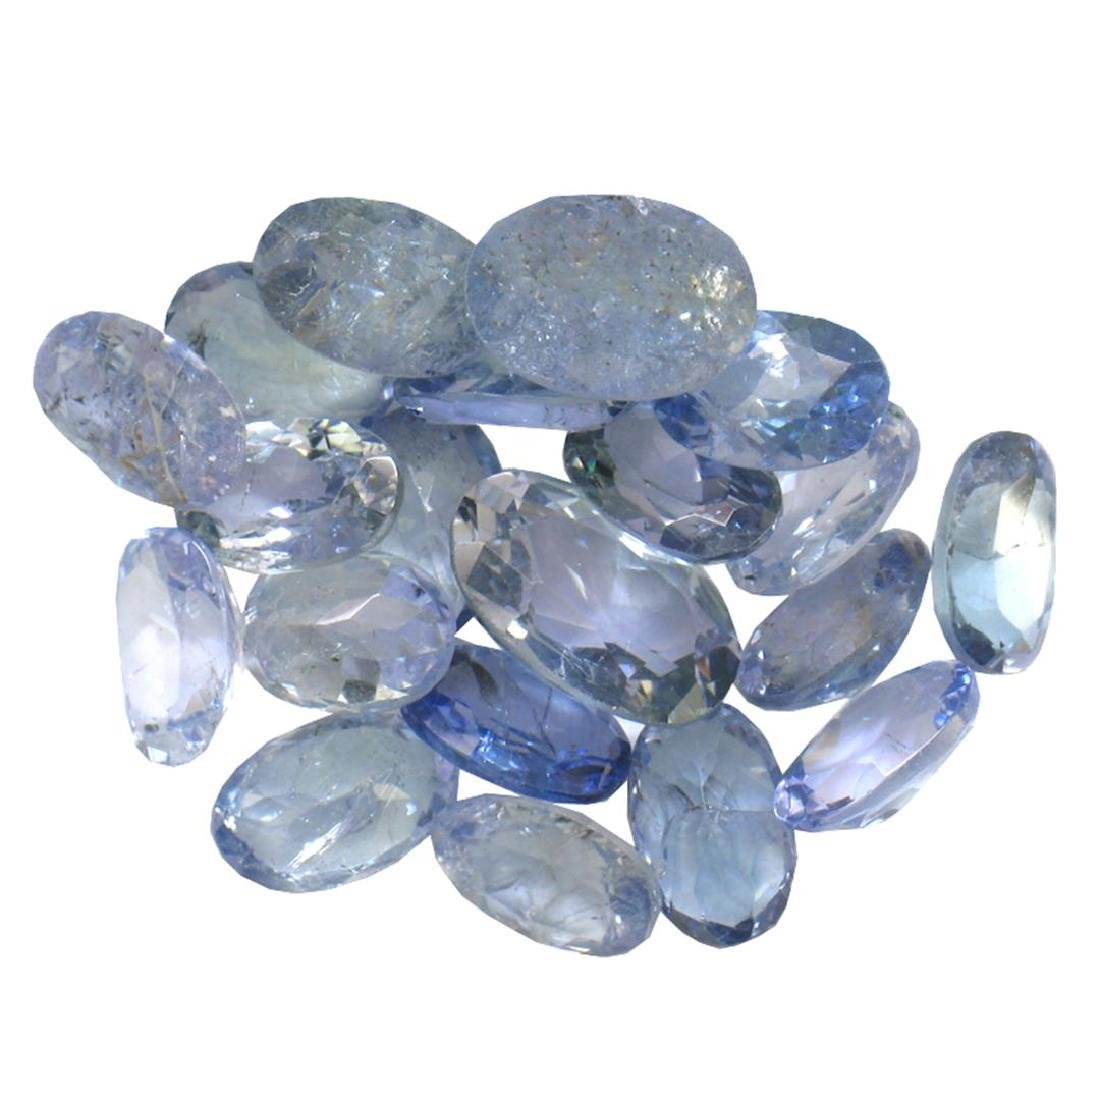 11 ctw Oval Mixed Tanzanite Parcel